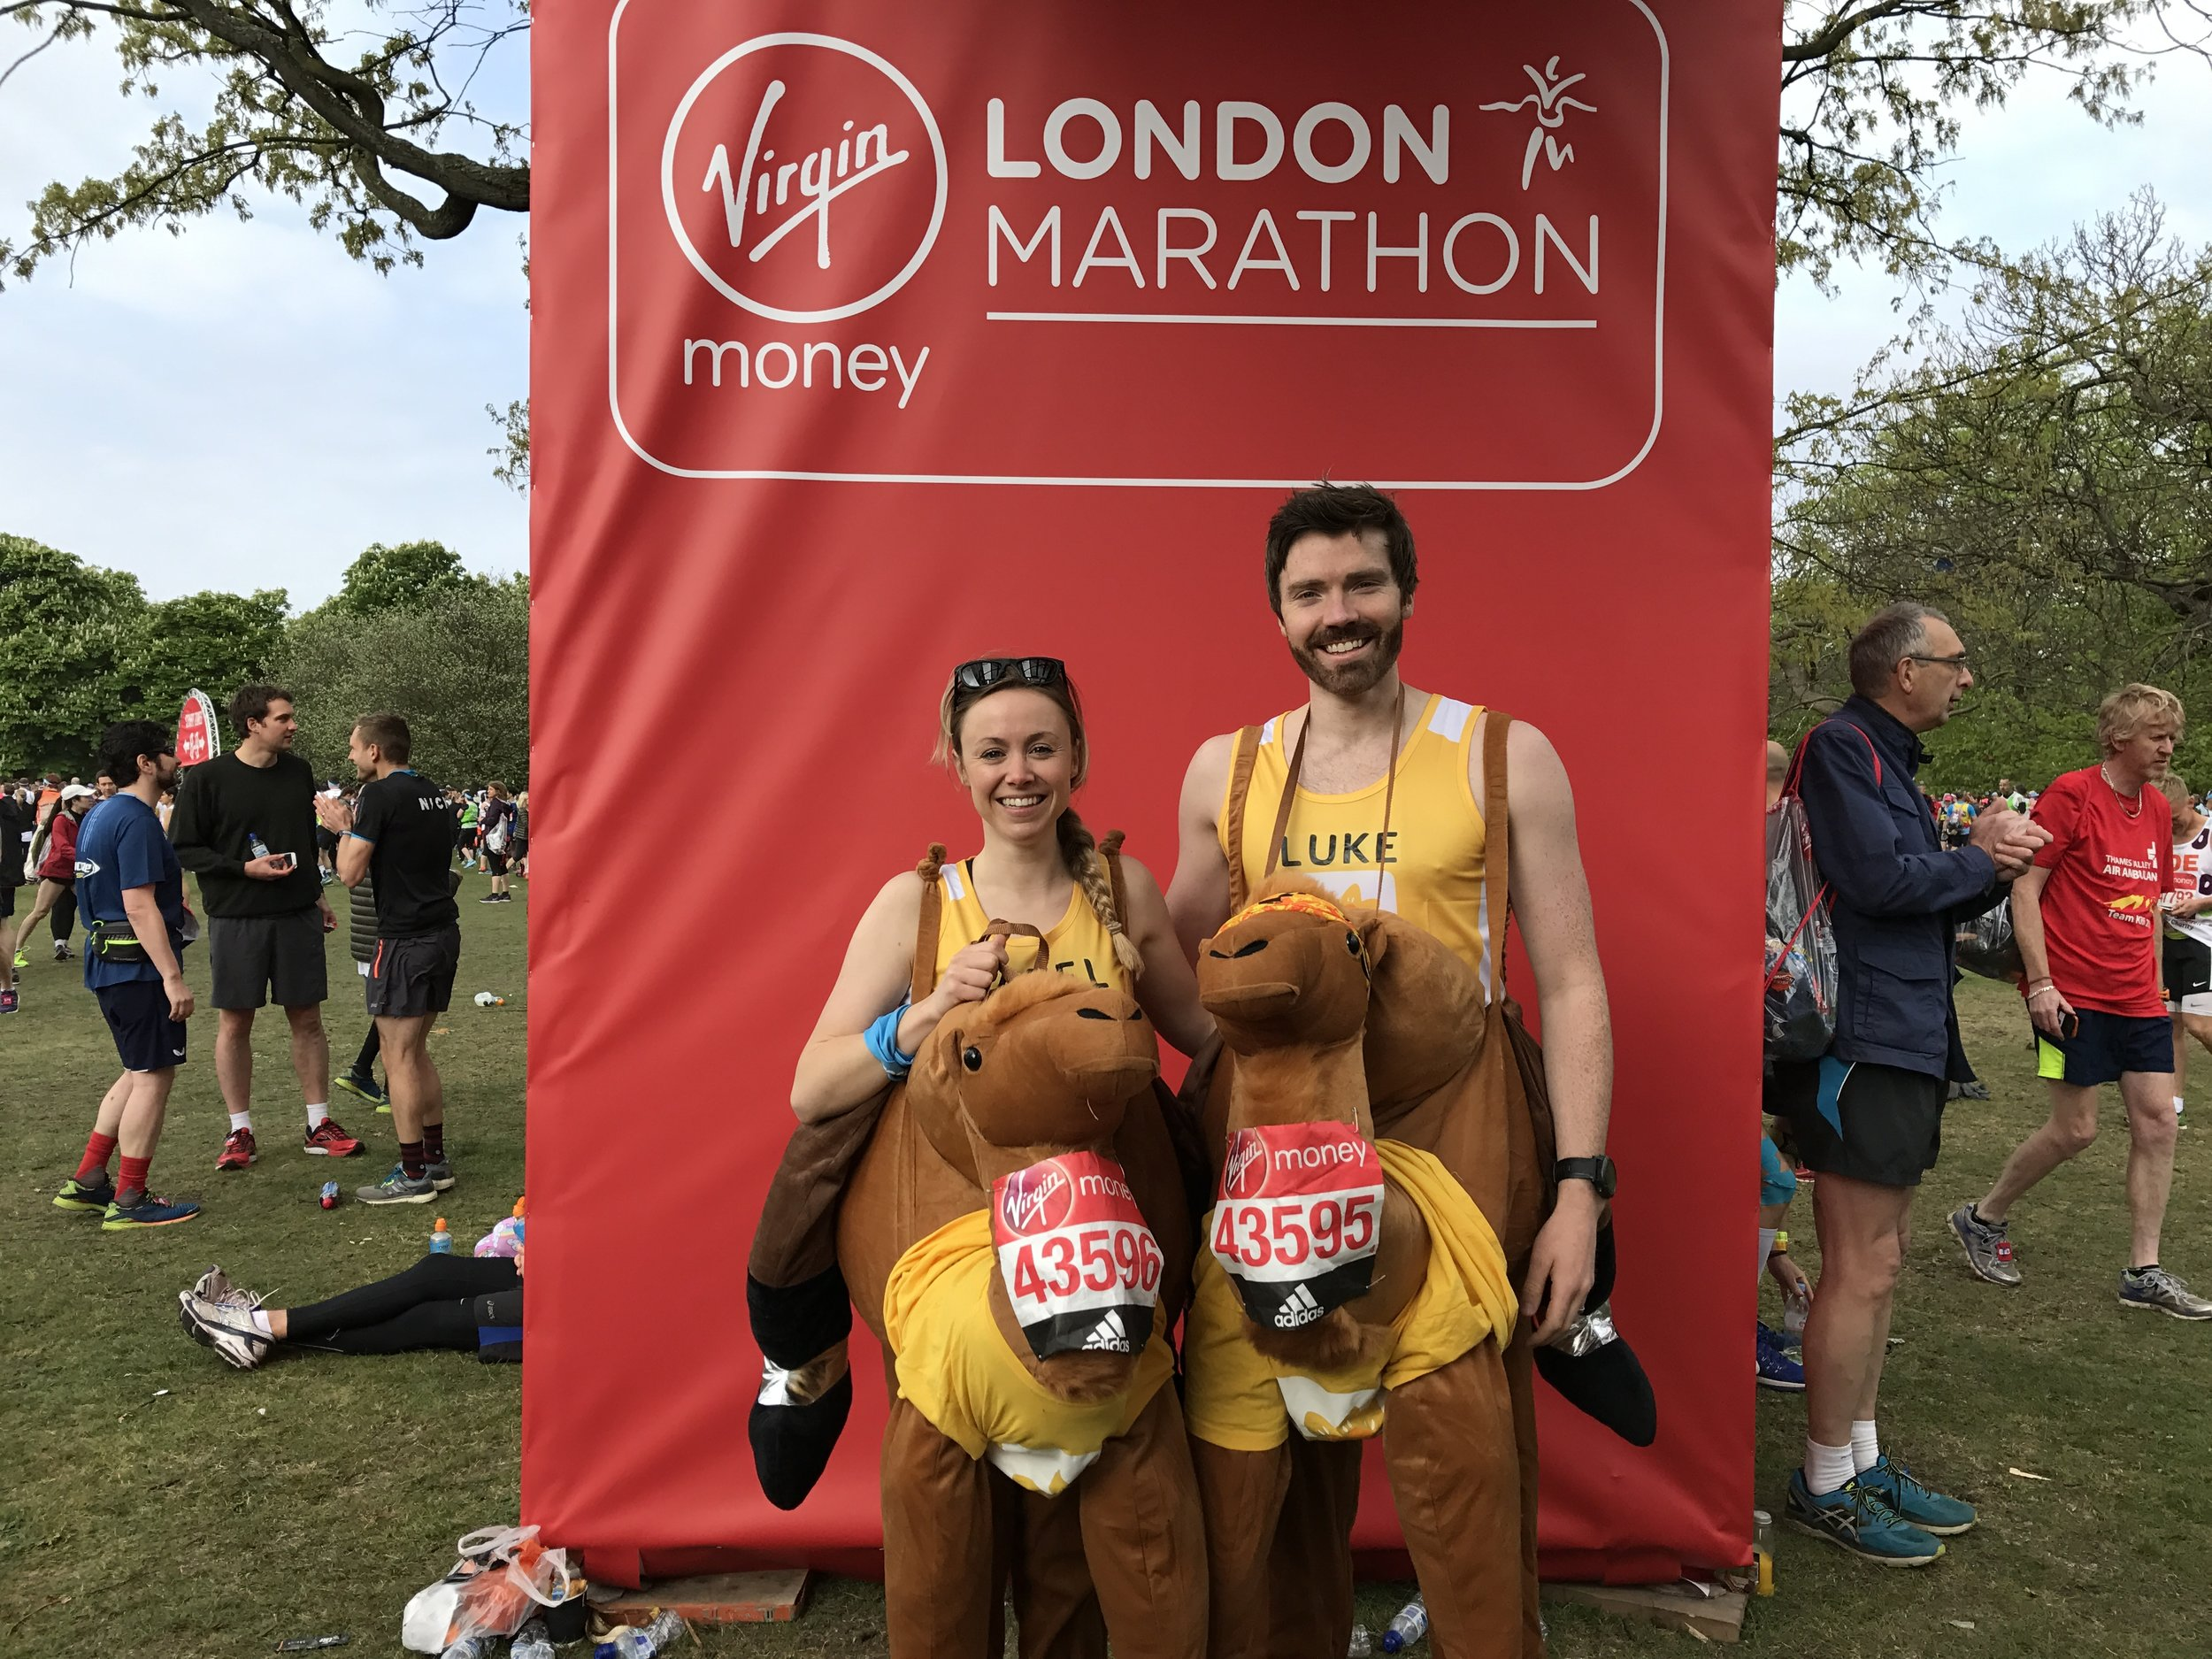 2017 London Marathon - dressed as camels... - In a nod to the Marathon des Sables which they had completed only a week prior, Hazel and Luke made the hasty decision to take on the London Marathon in camel costumes.  They would go onto get the hump at several points during the day....